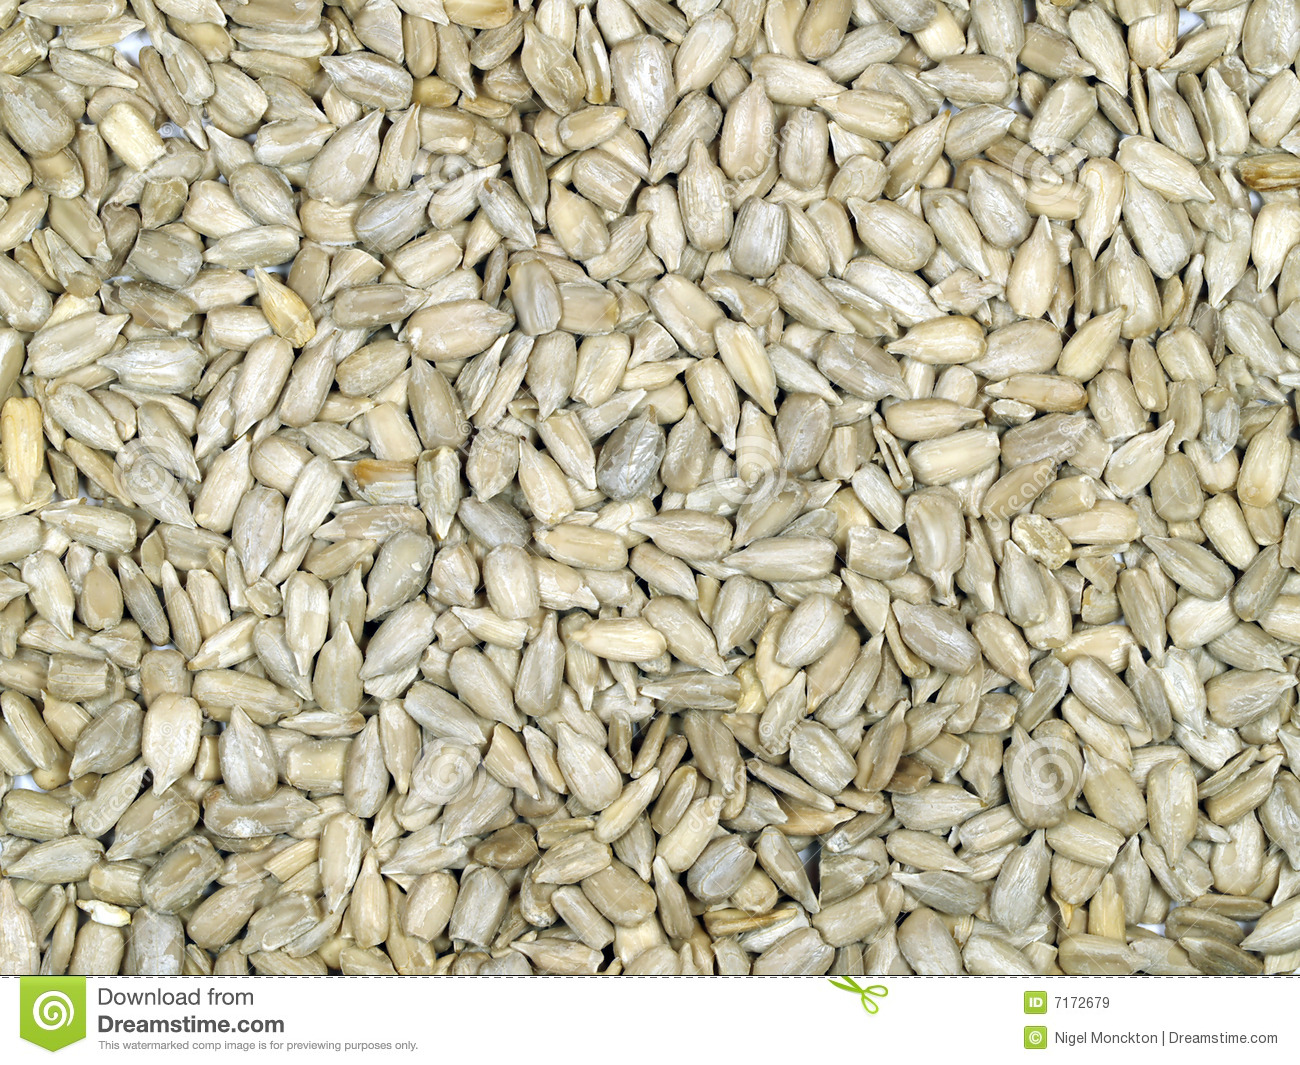 Sunflower seeds hulled